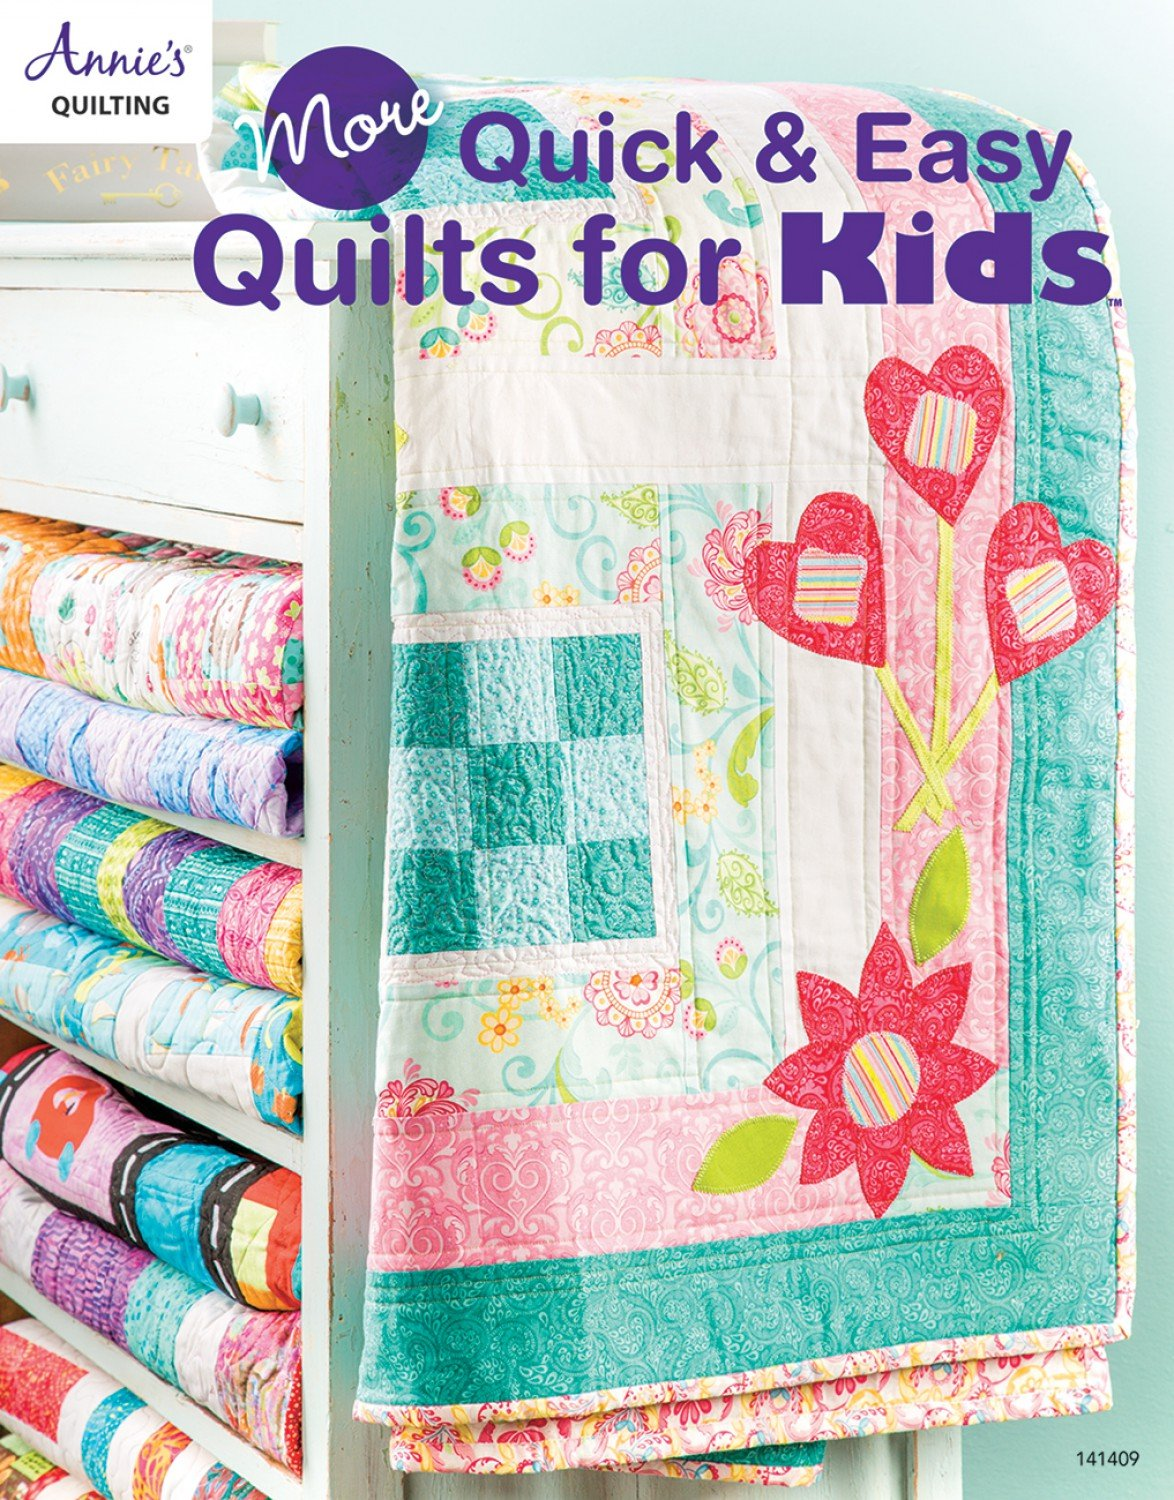 More Quick & Easy Quilts for Kids 141409